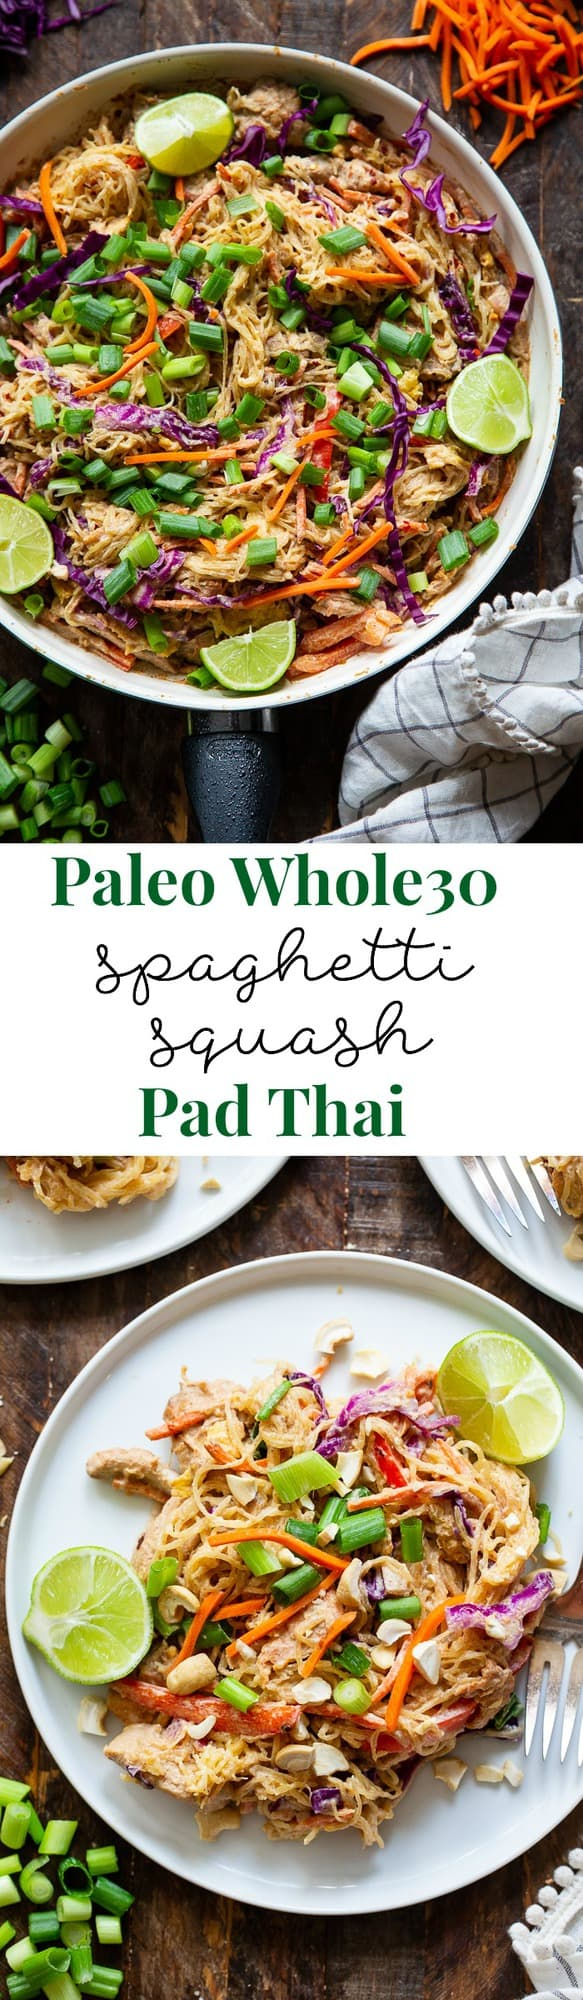 This healthier spaghetti squash pad thai is easy to make at home and packed with veggies, chicken, and a flavorful sauce.  It comes together in 30 minutes and the leftovers are perfect for lunches the next day!  Paleo, Whole30, family friendly and low carb.